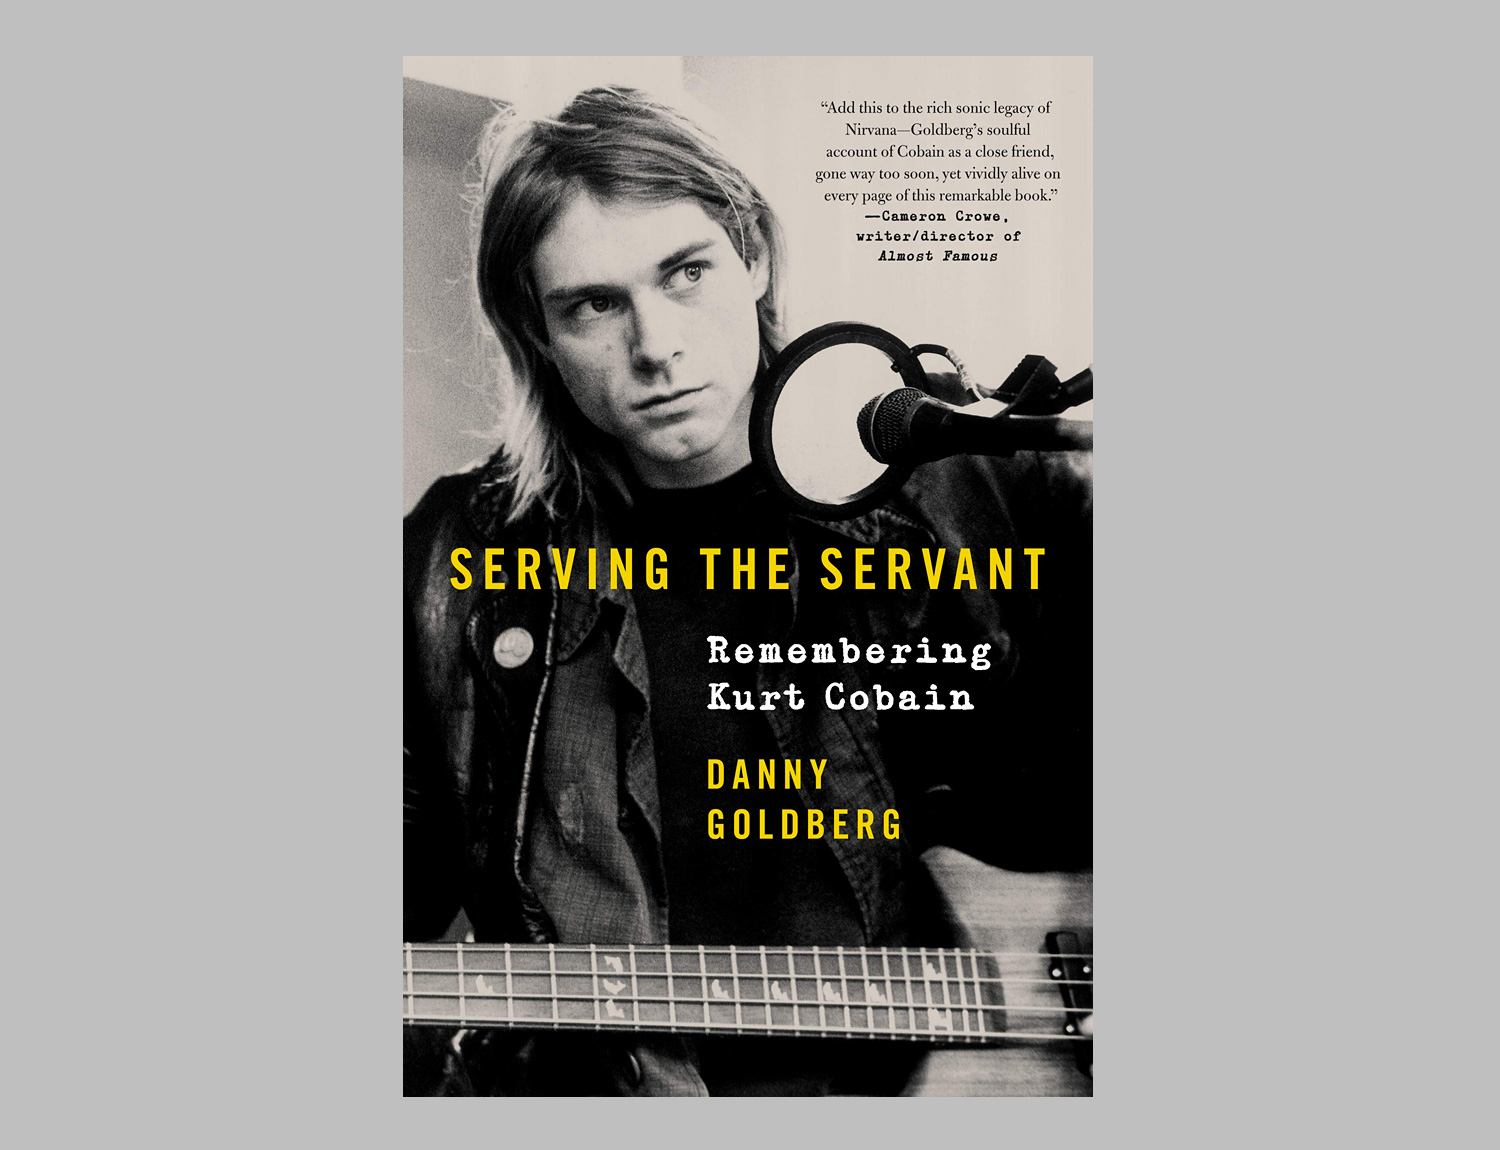 Serving the Servant: Remembering Kurt Cobain at werd.com